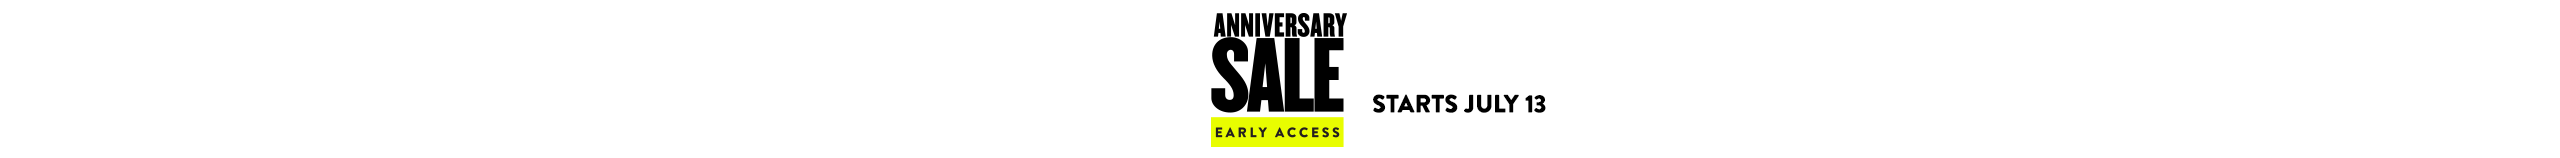 Anniversary Sale Early Access starts July 13. Save the date!